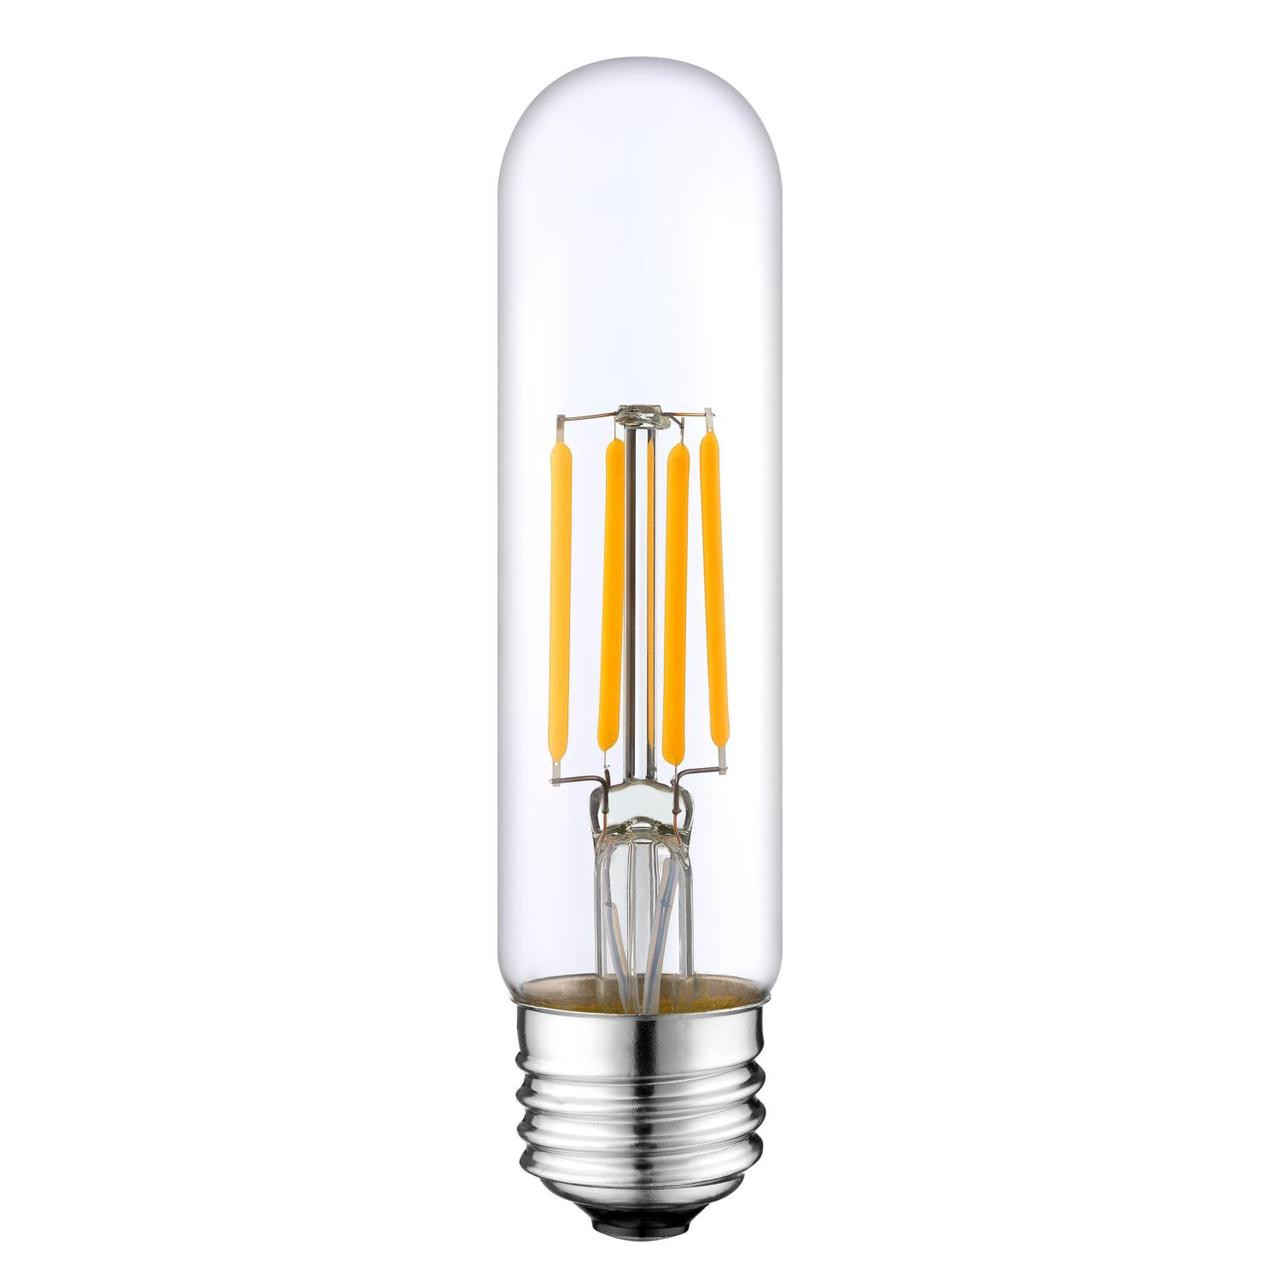 4W T30 LED Filament Bulb (Frosted)